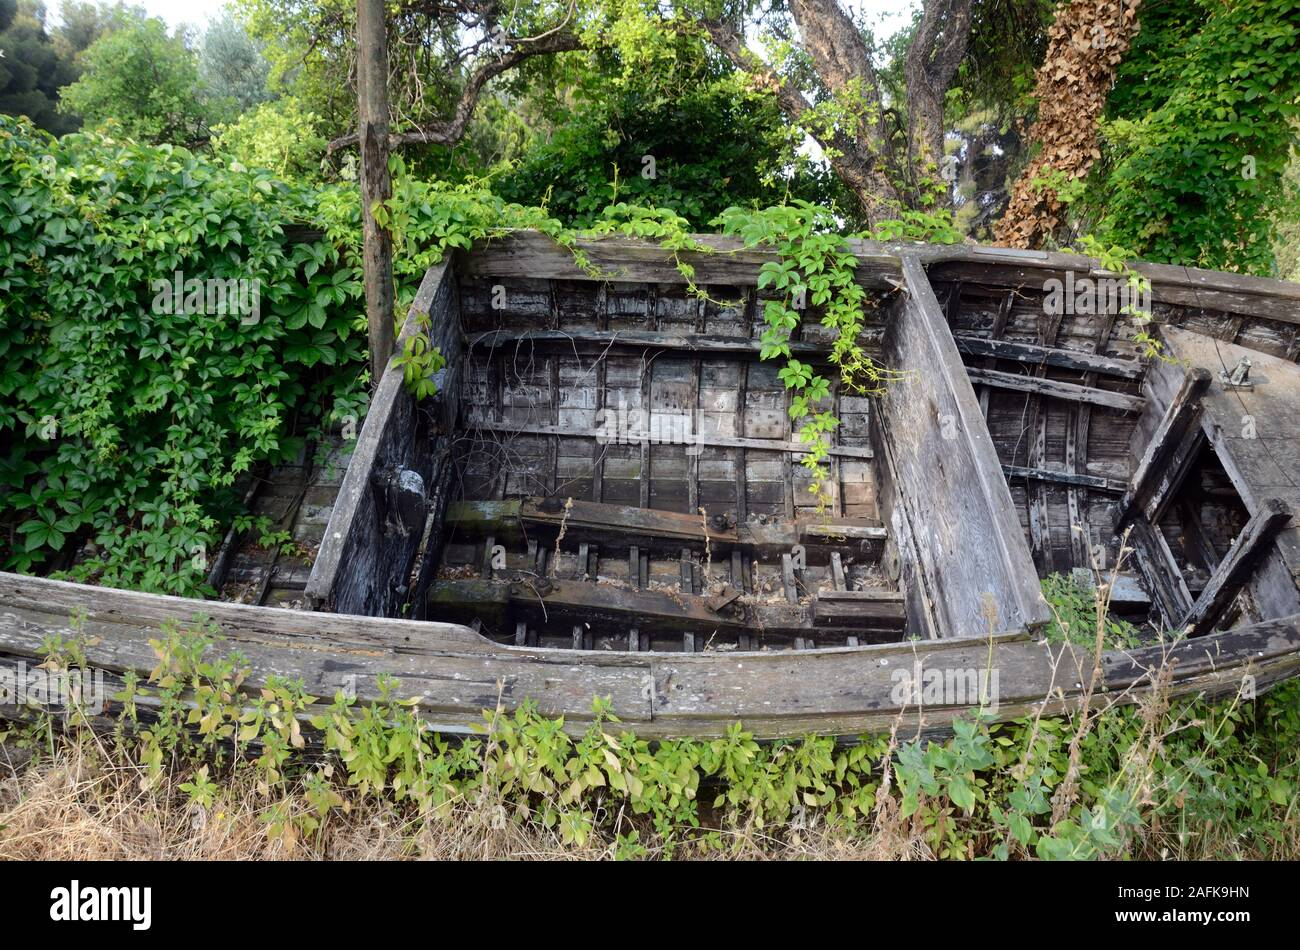 Abandoned Wrecked Boat or Old Wooden Boat Covered in Overgrowth at La Seyne-sur-Mer Var Provence France Stock Photo